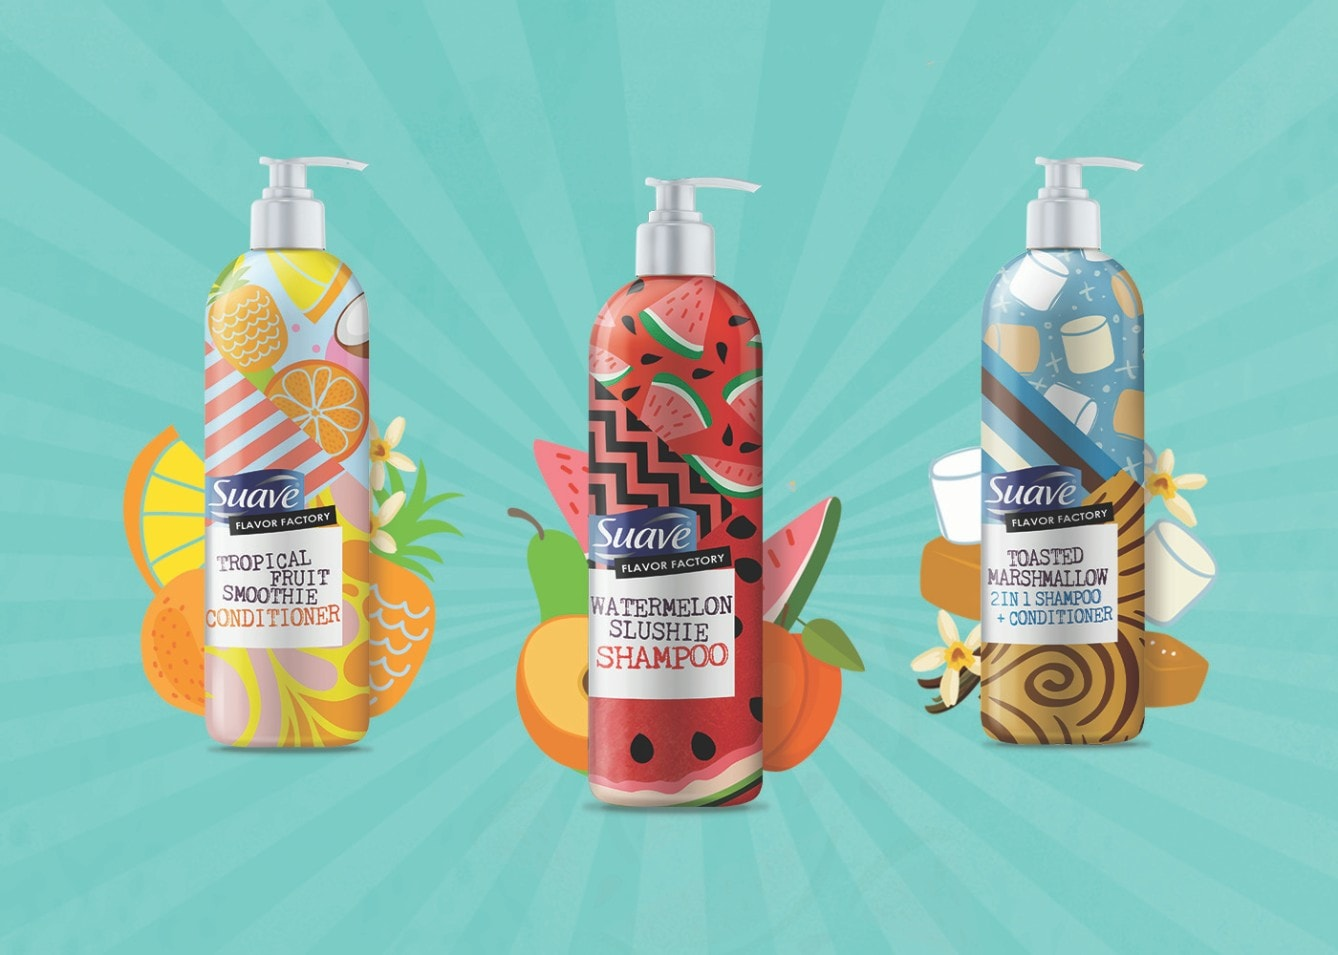 Suave Flavor Factory Collection